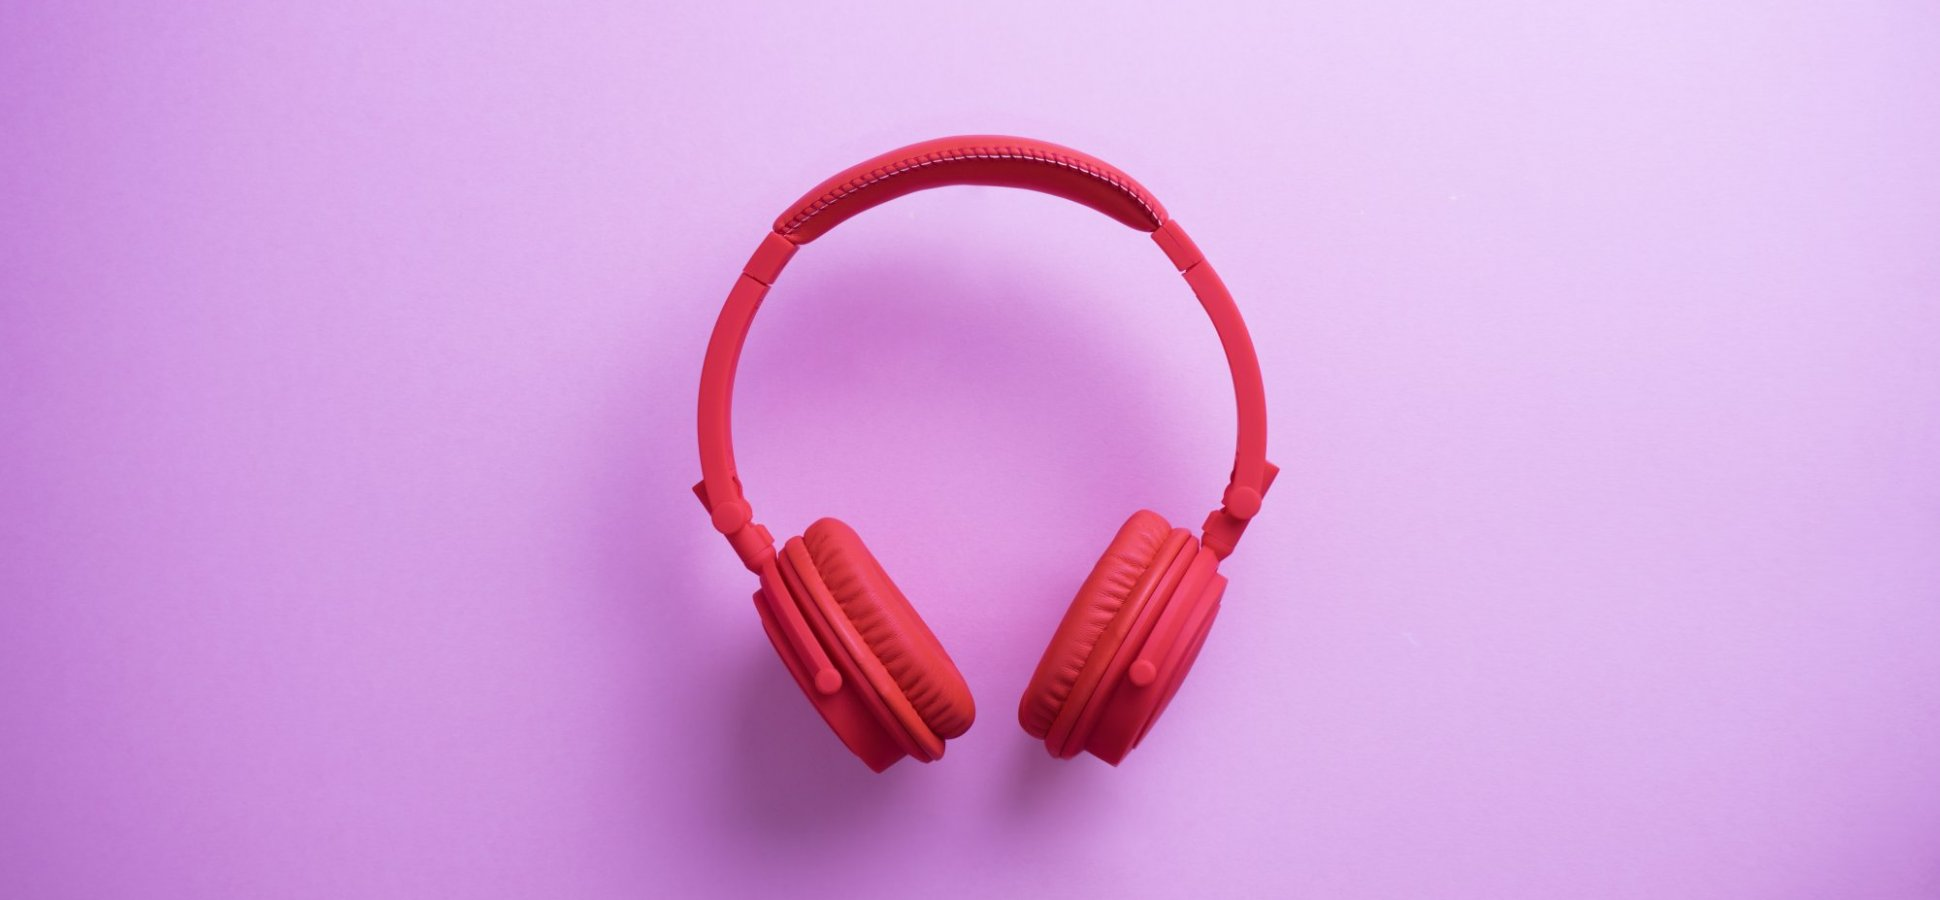 5 Game-Changing Podcasts To Listen To On Your Commute